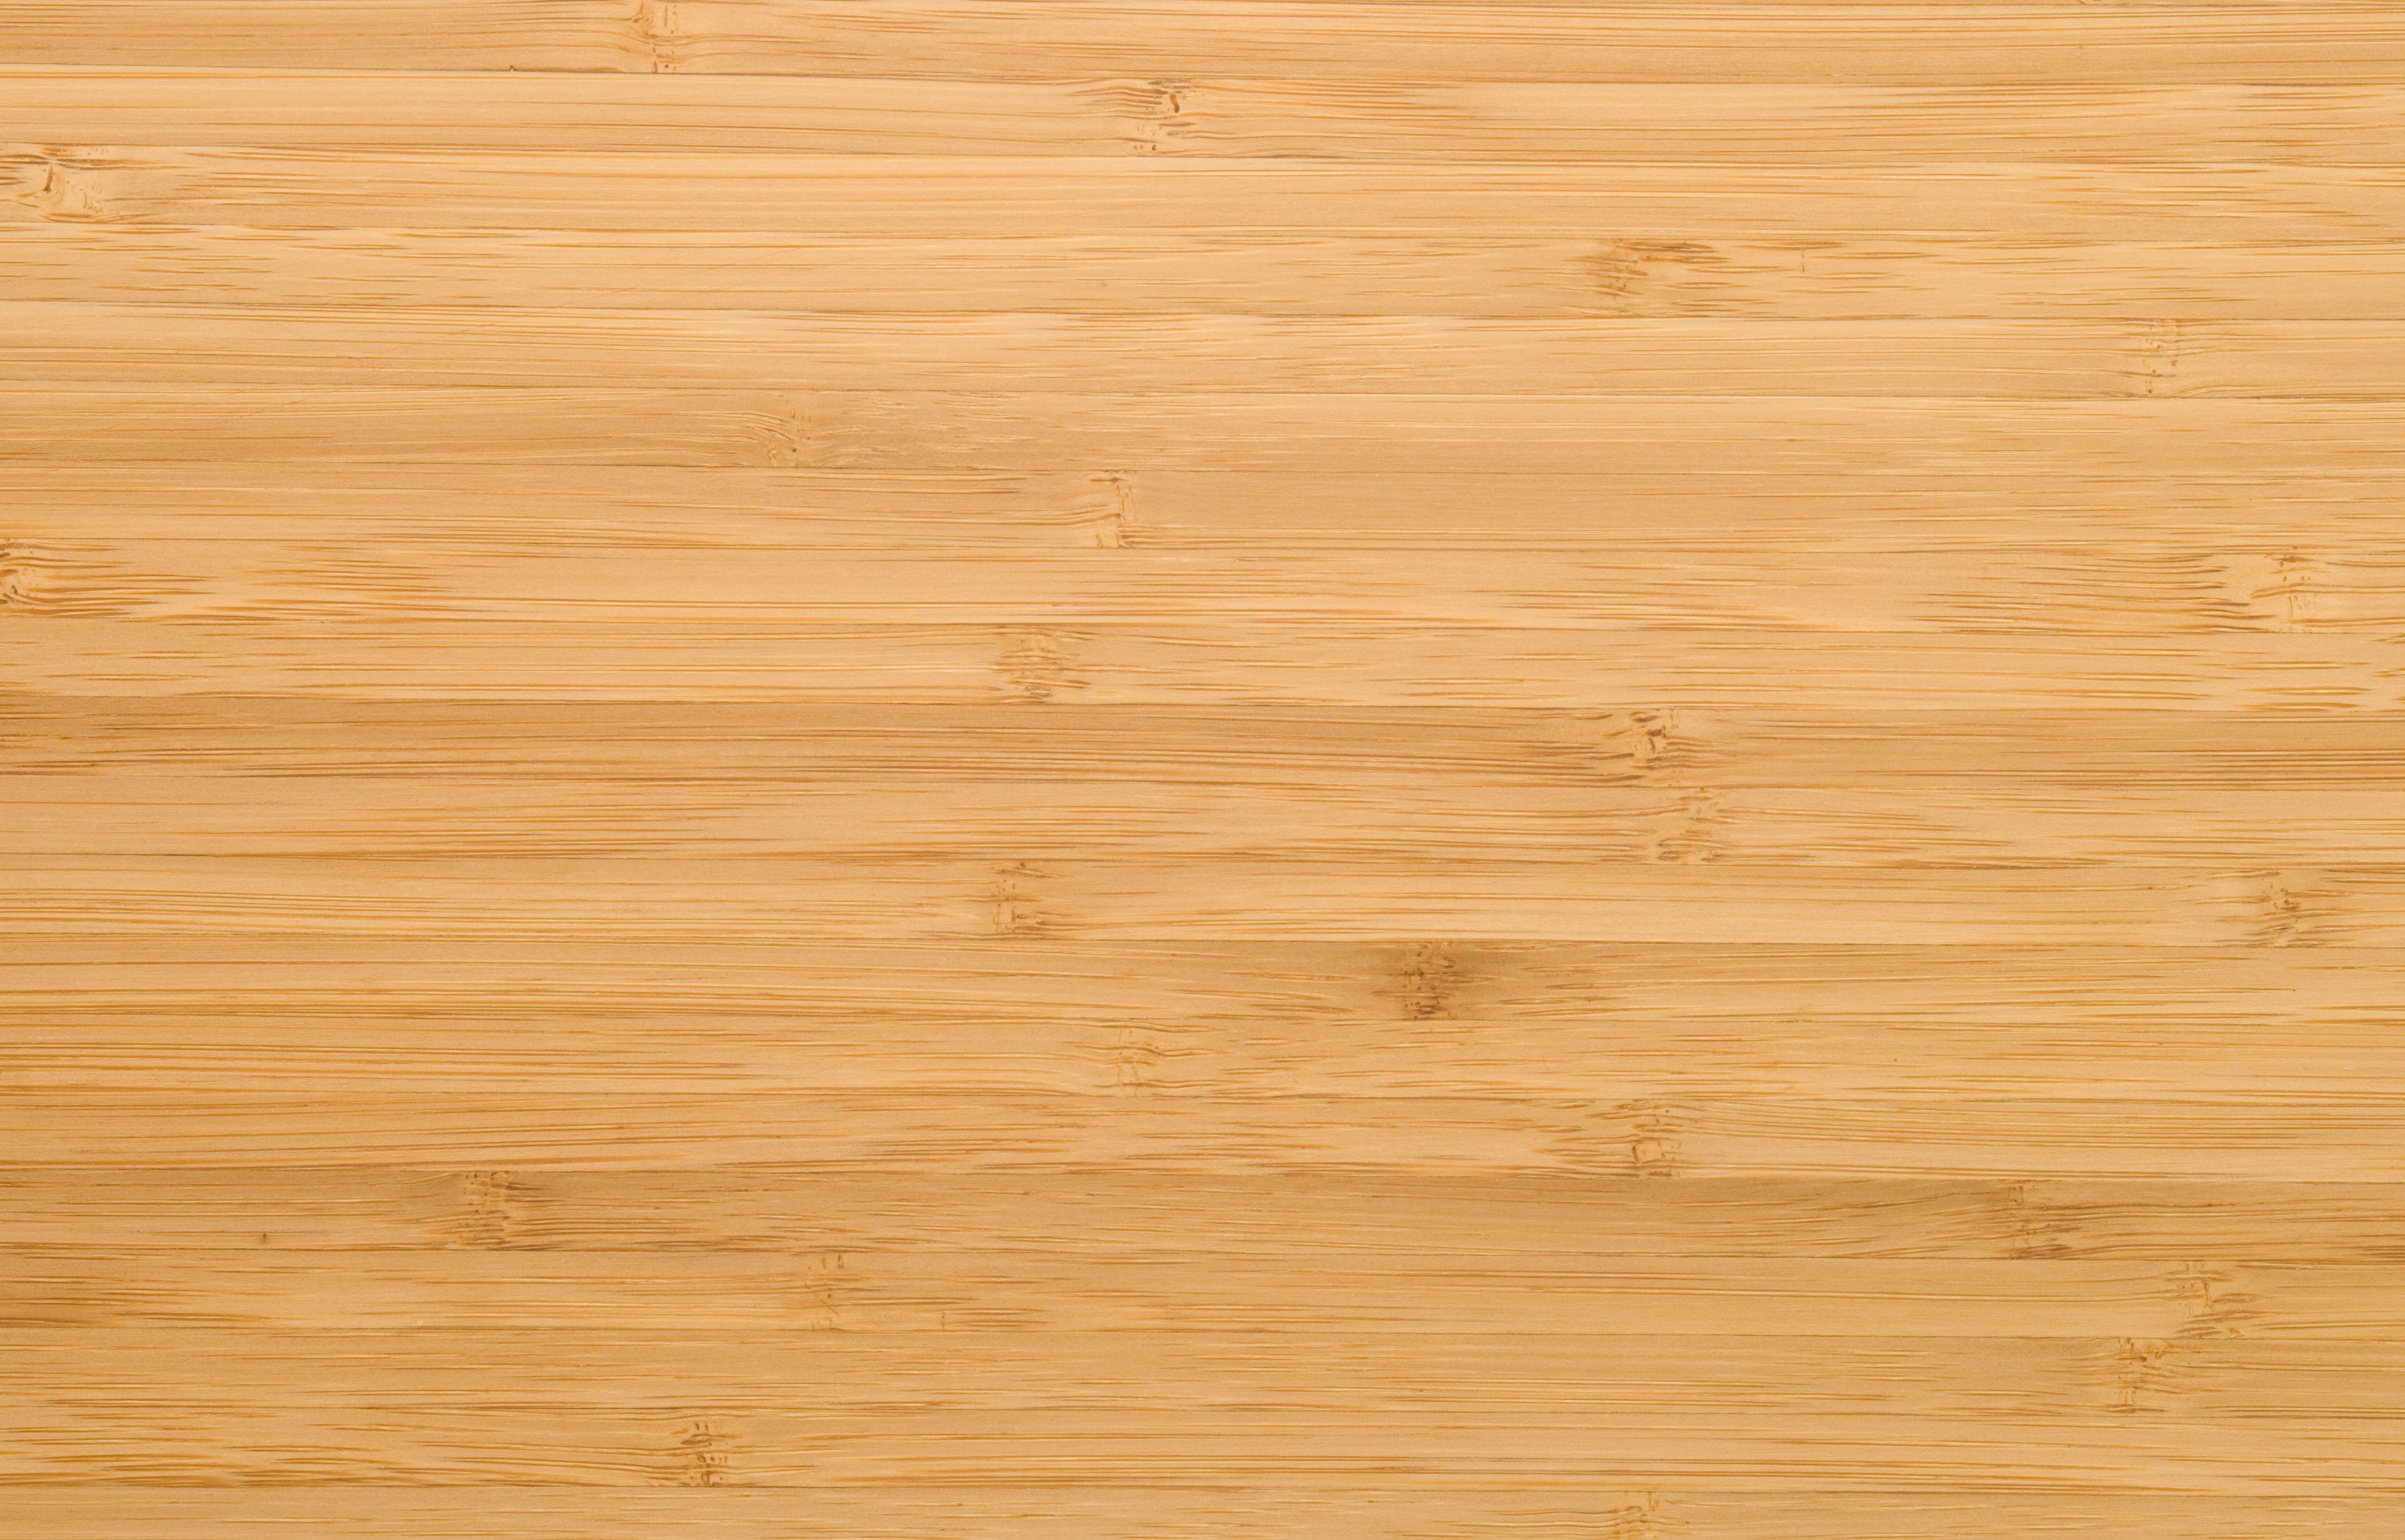 21 Amazing Bamboo Engineered Hardwood Flooring 2021 free download bamboo engineered hardwood flooring of can you use a wet mop on bamboo floors within natural bamboo plank 94259870 59aeefd4519de20010d5c648